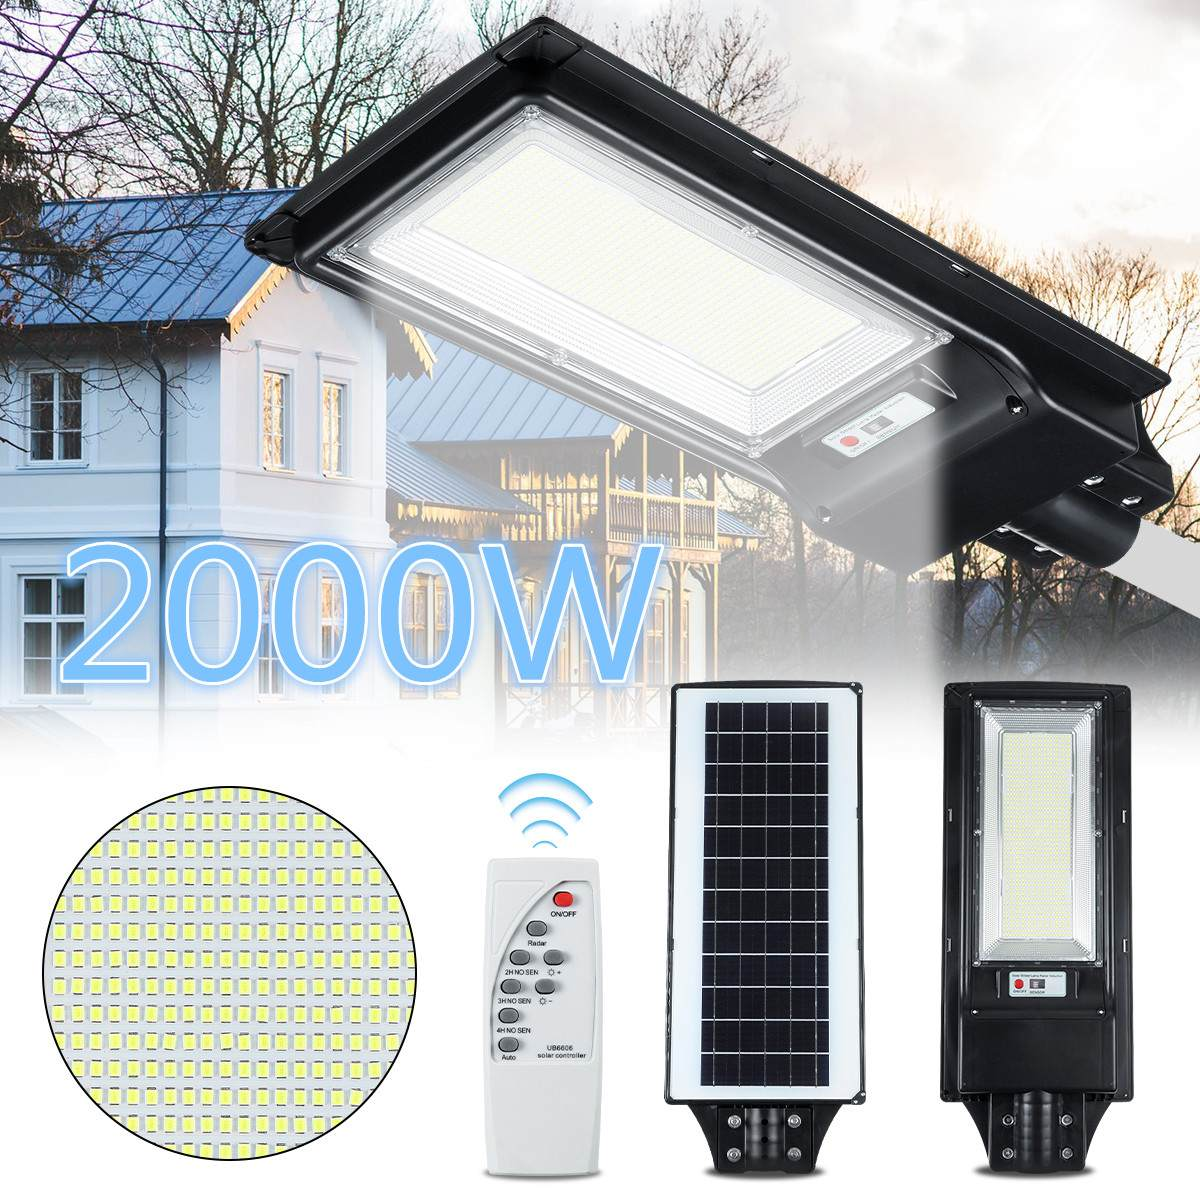 LED Solar Street Light 1000W 2000W PIR Motion Sensor Wall Lamp Human Body Infrared Outdoor Waterproof Home Garden Security Light